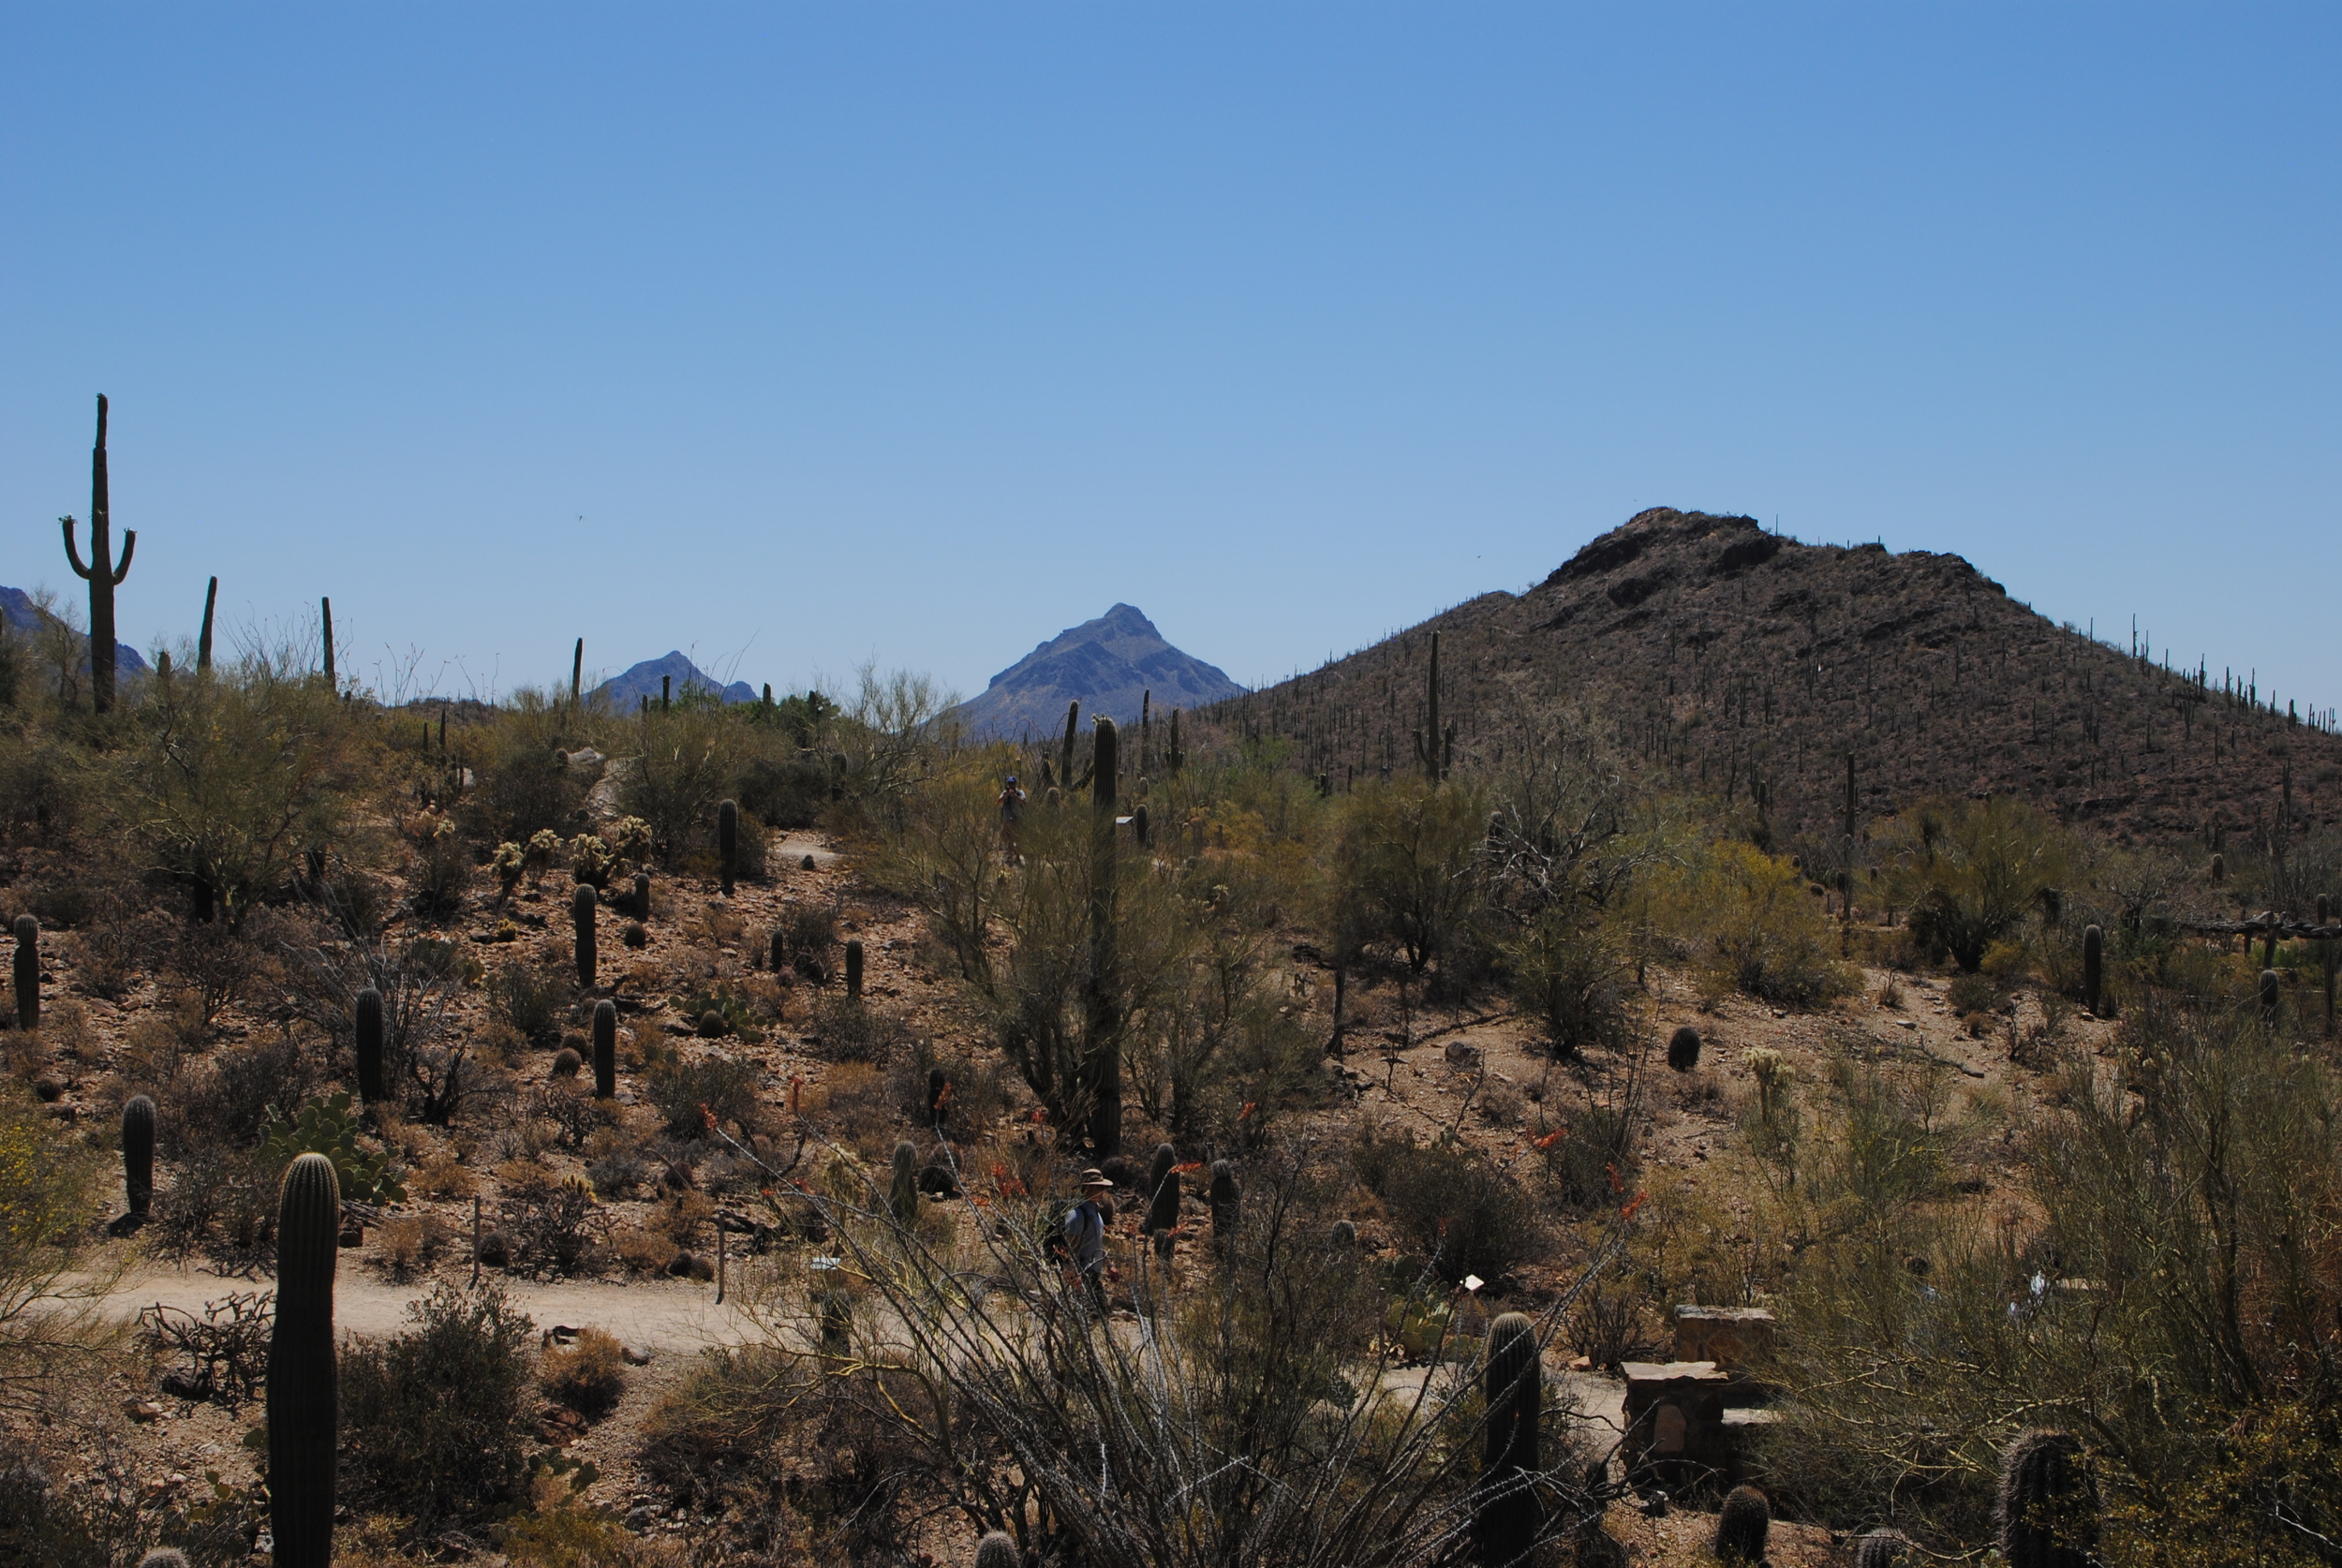 View of the grounds at the Arizona Sonoran Desert Museum